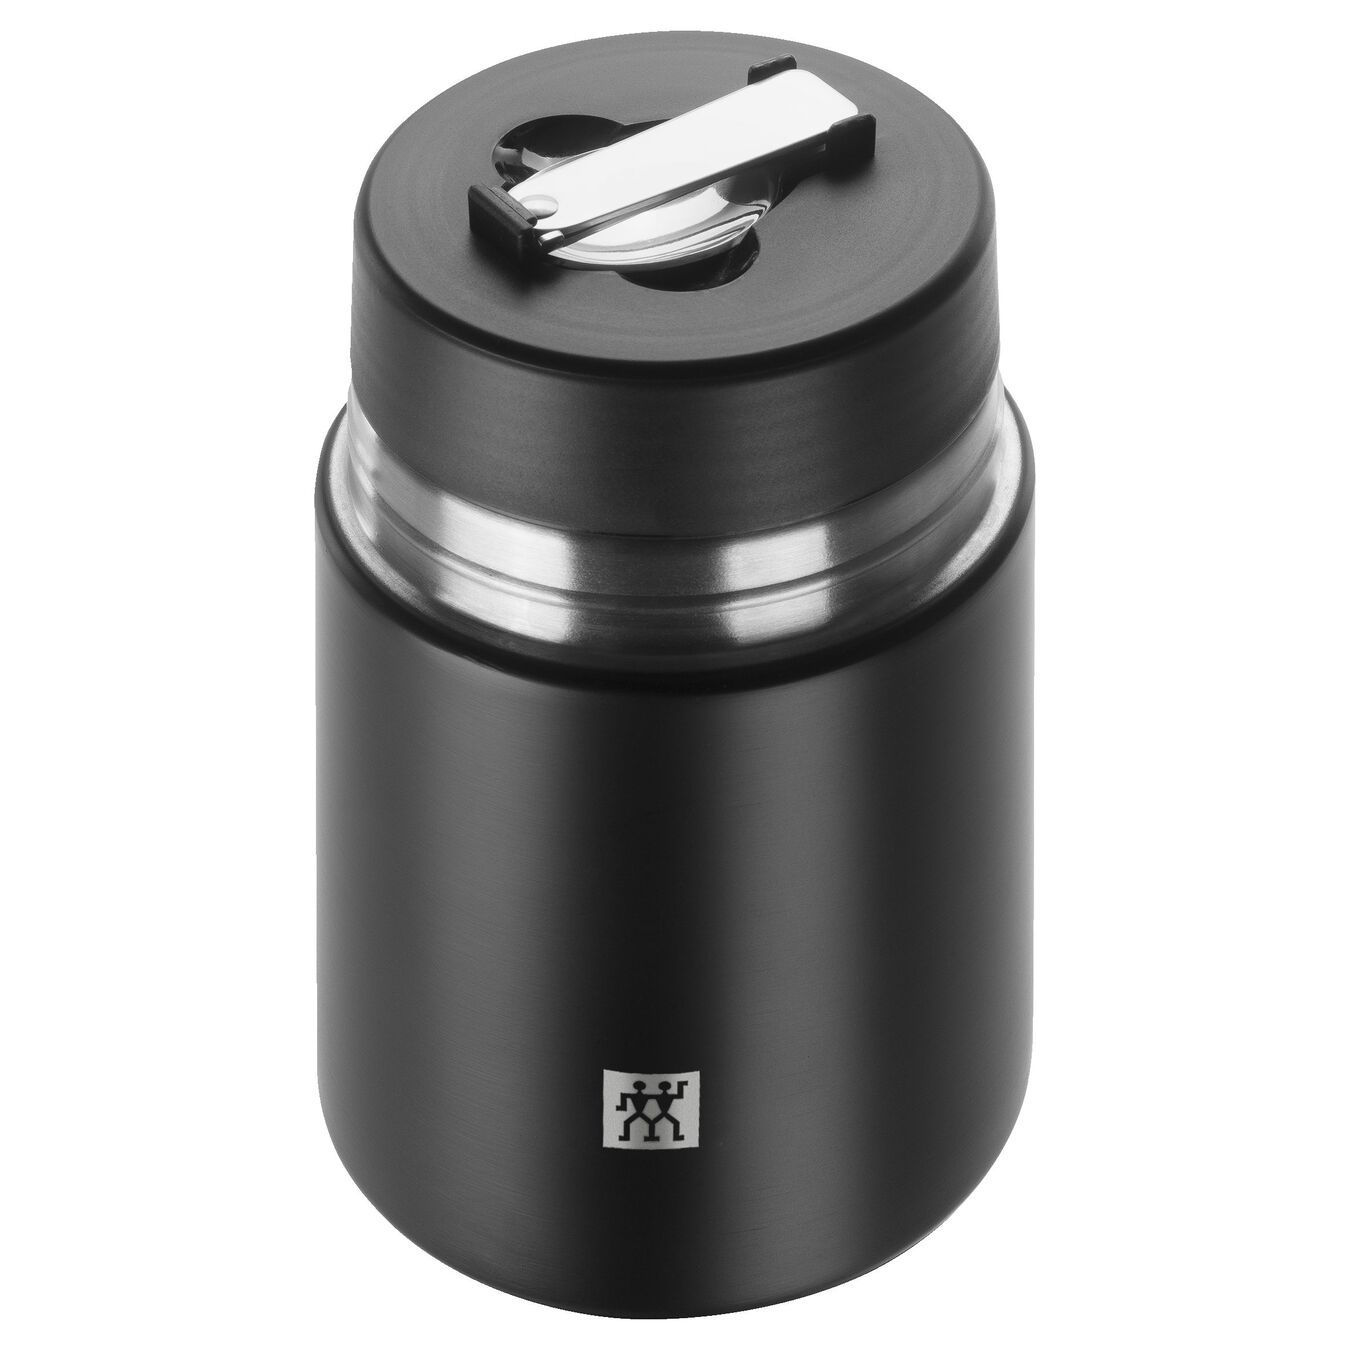 Contenant alimentaire isotherme, Black | Stainless steel | 700 ml,,large 2